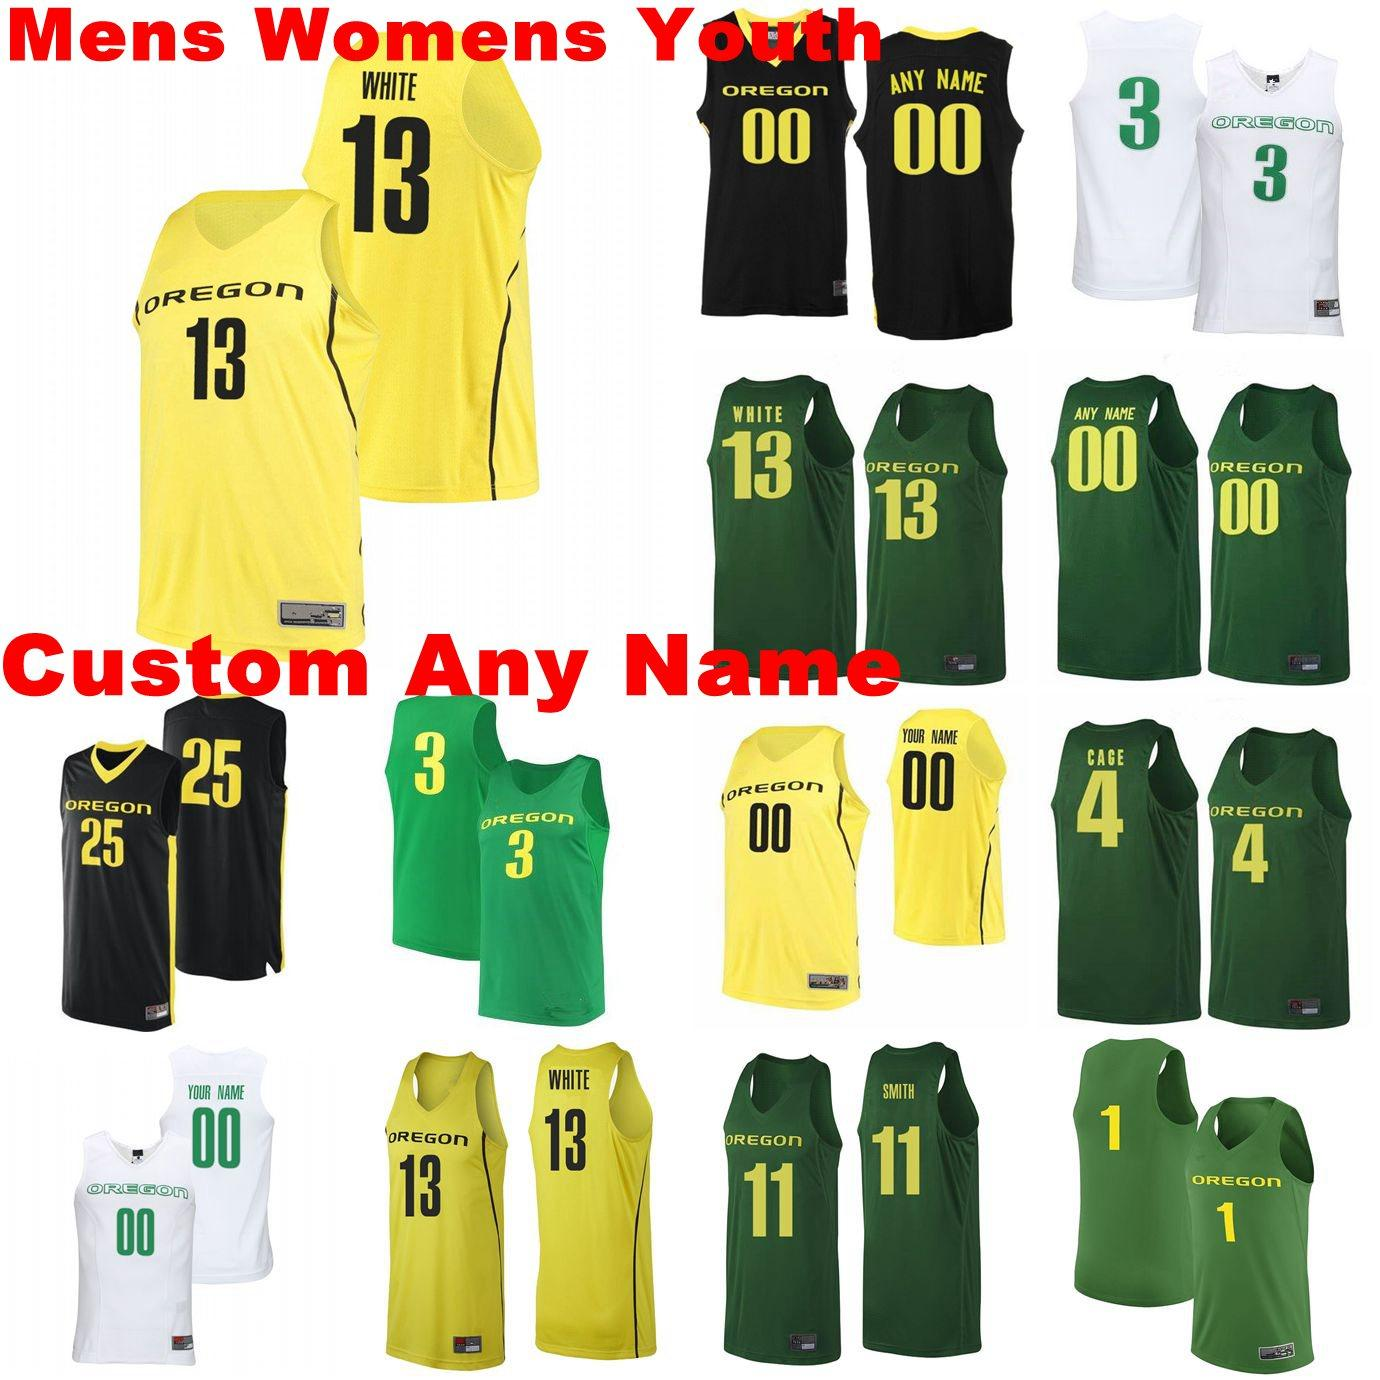 Oregon Ducks Jerseys Chandler Lawson Jersey Anthony Mathis Okoro Eugene Omoruyi Luke Osborn College Basketball Basketball Jerseys Mens personnalisé cousu